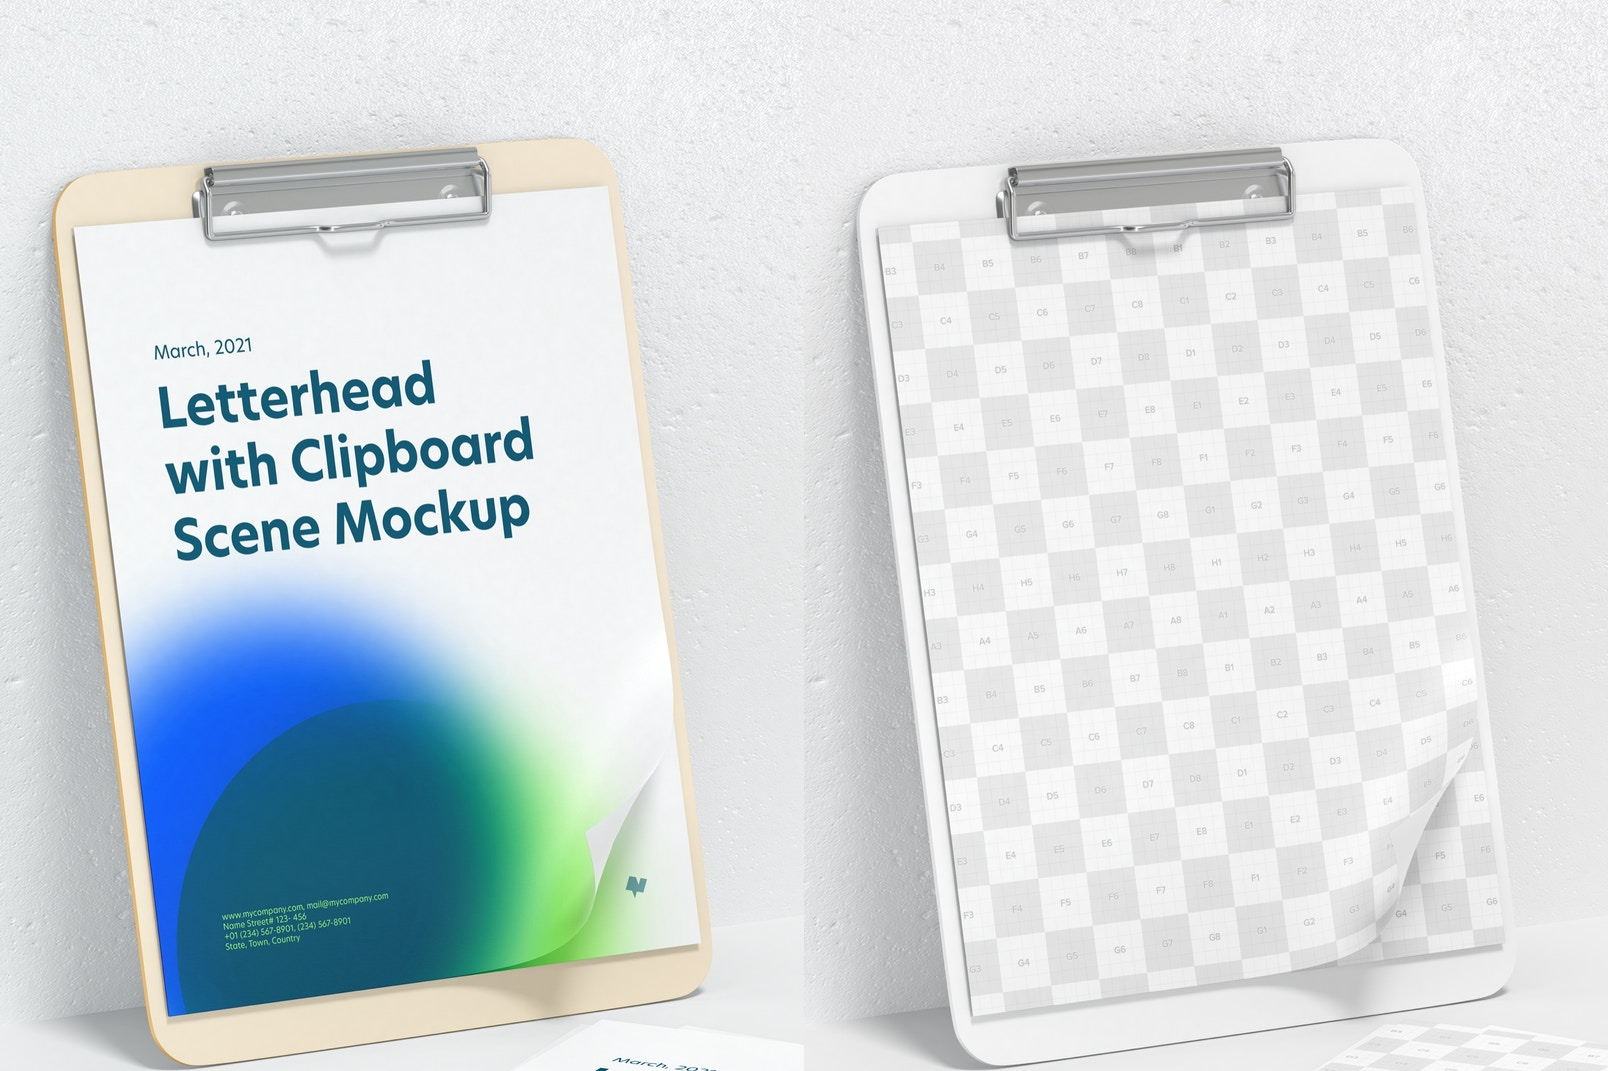 Letterhead with Clipboard Scene Mockup, Perspective View